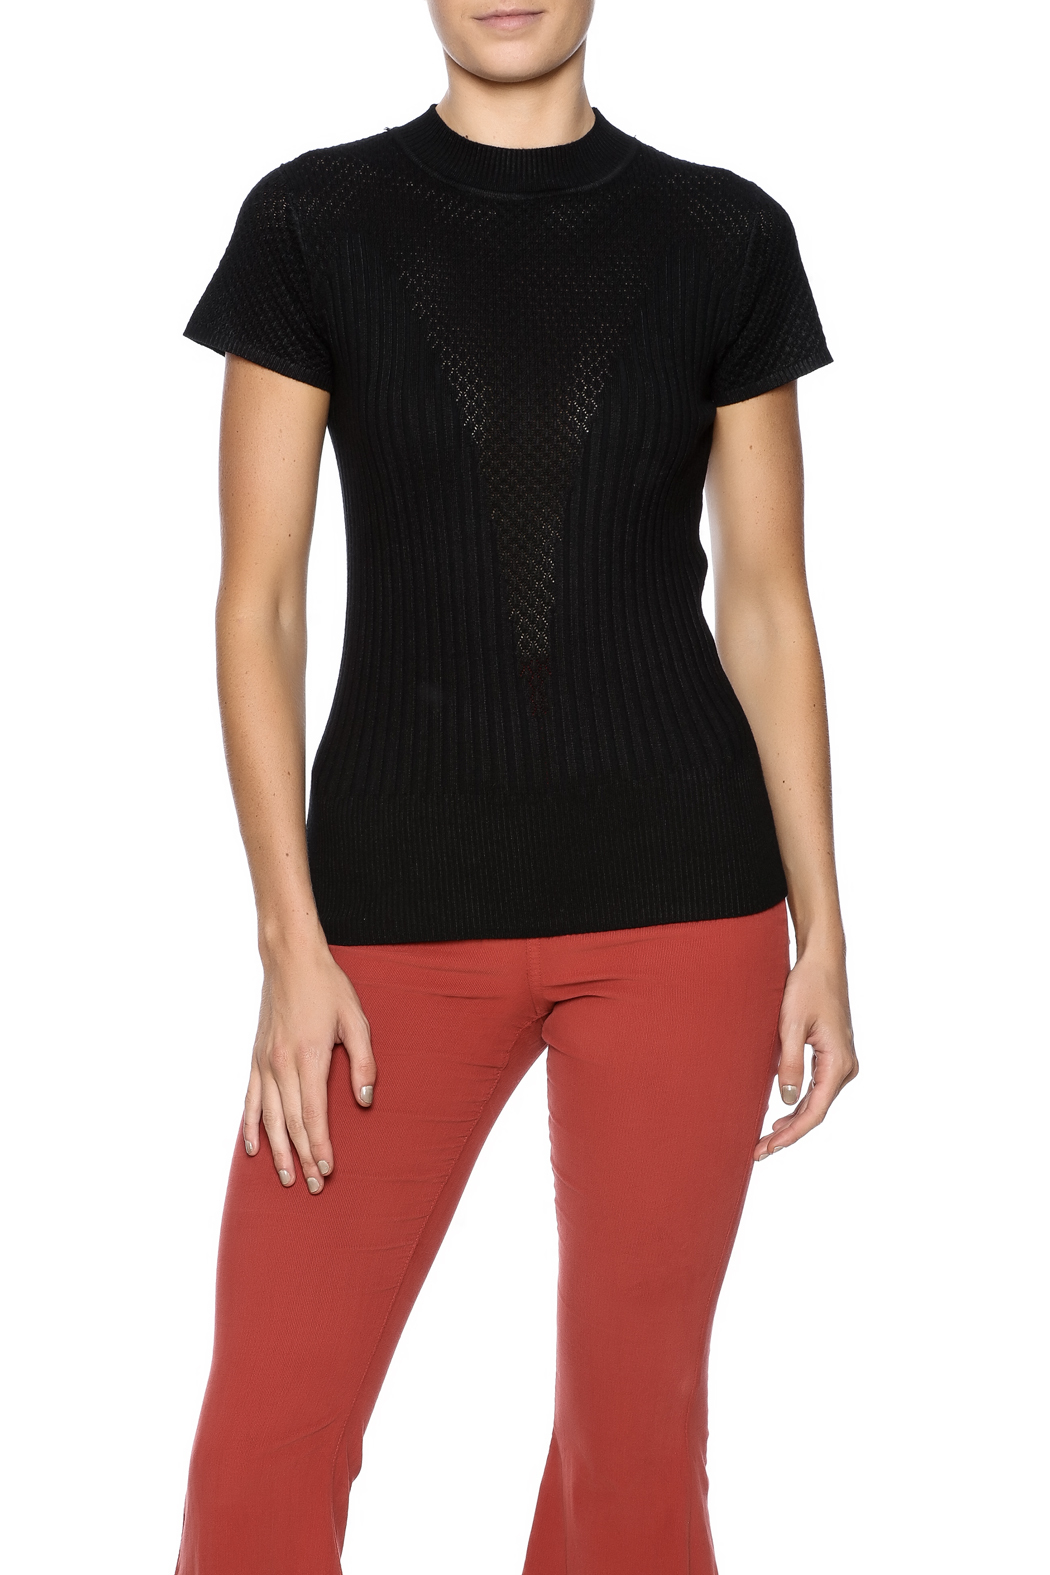 More Details Theory Wendel Sleeveless Knit Top Details Theory